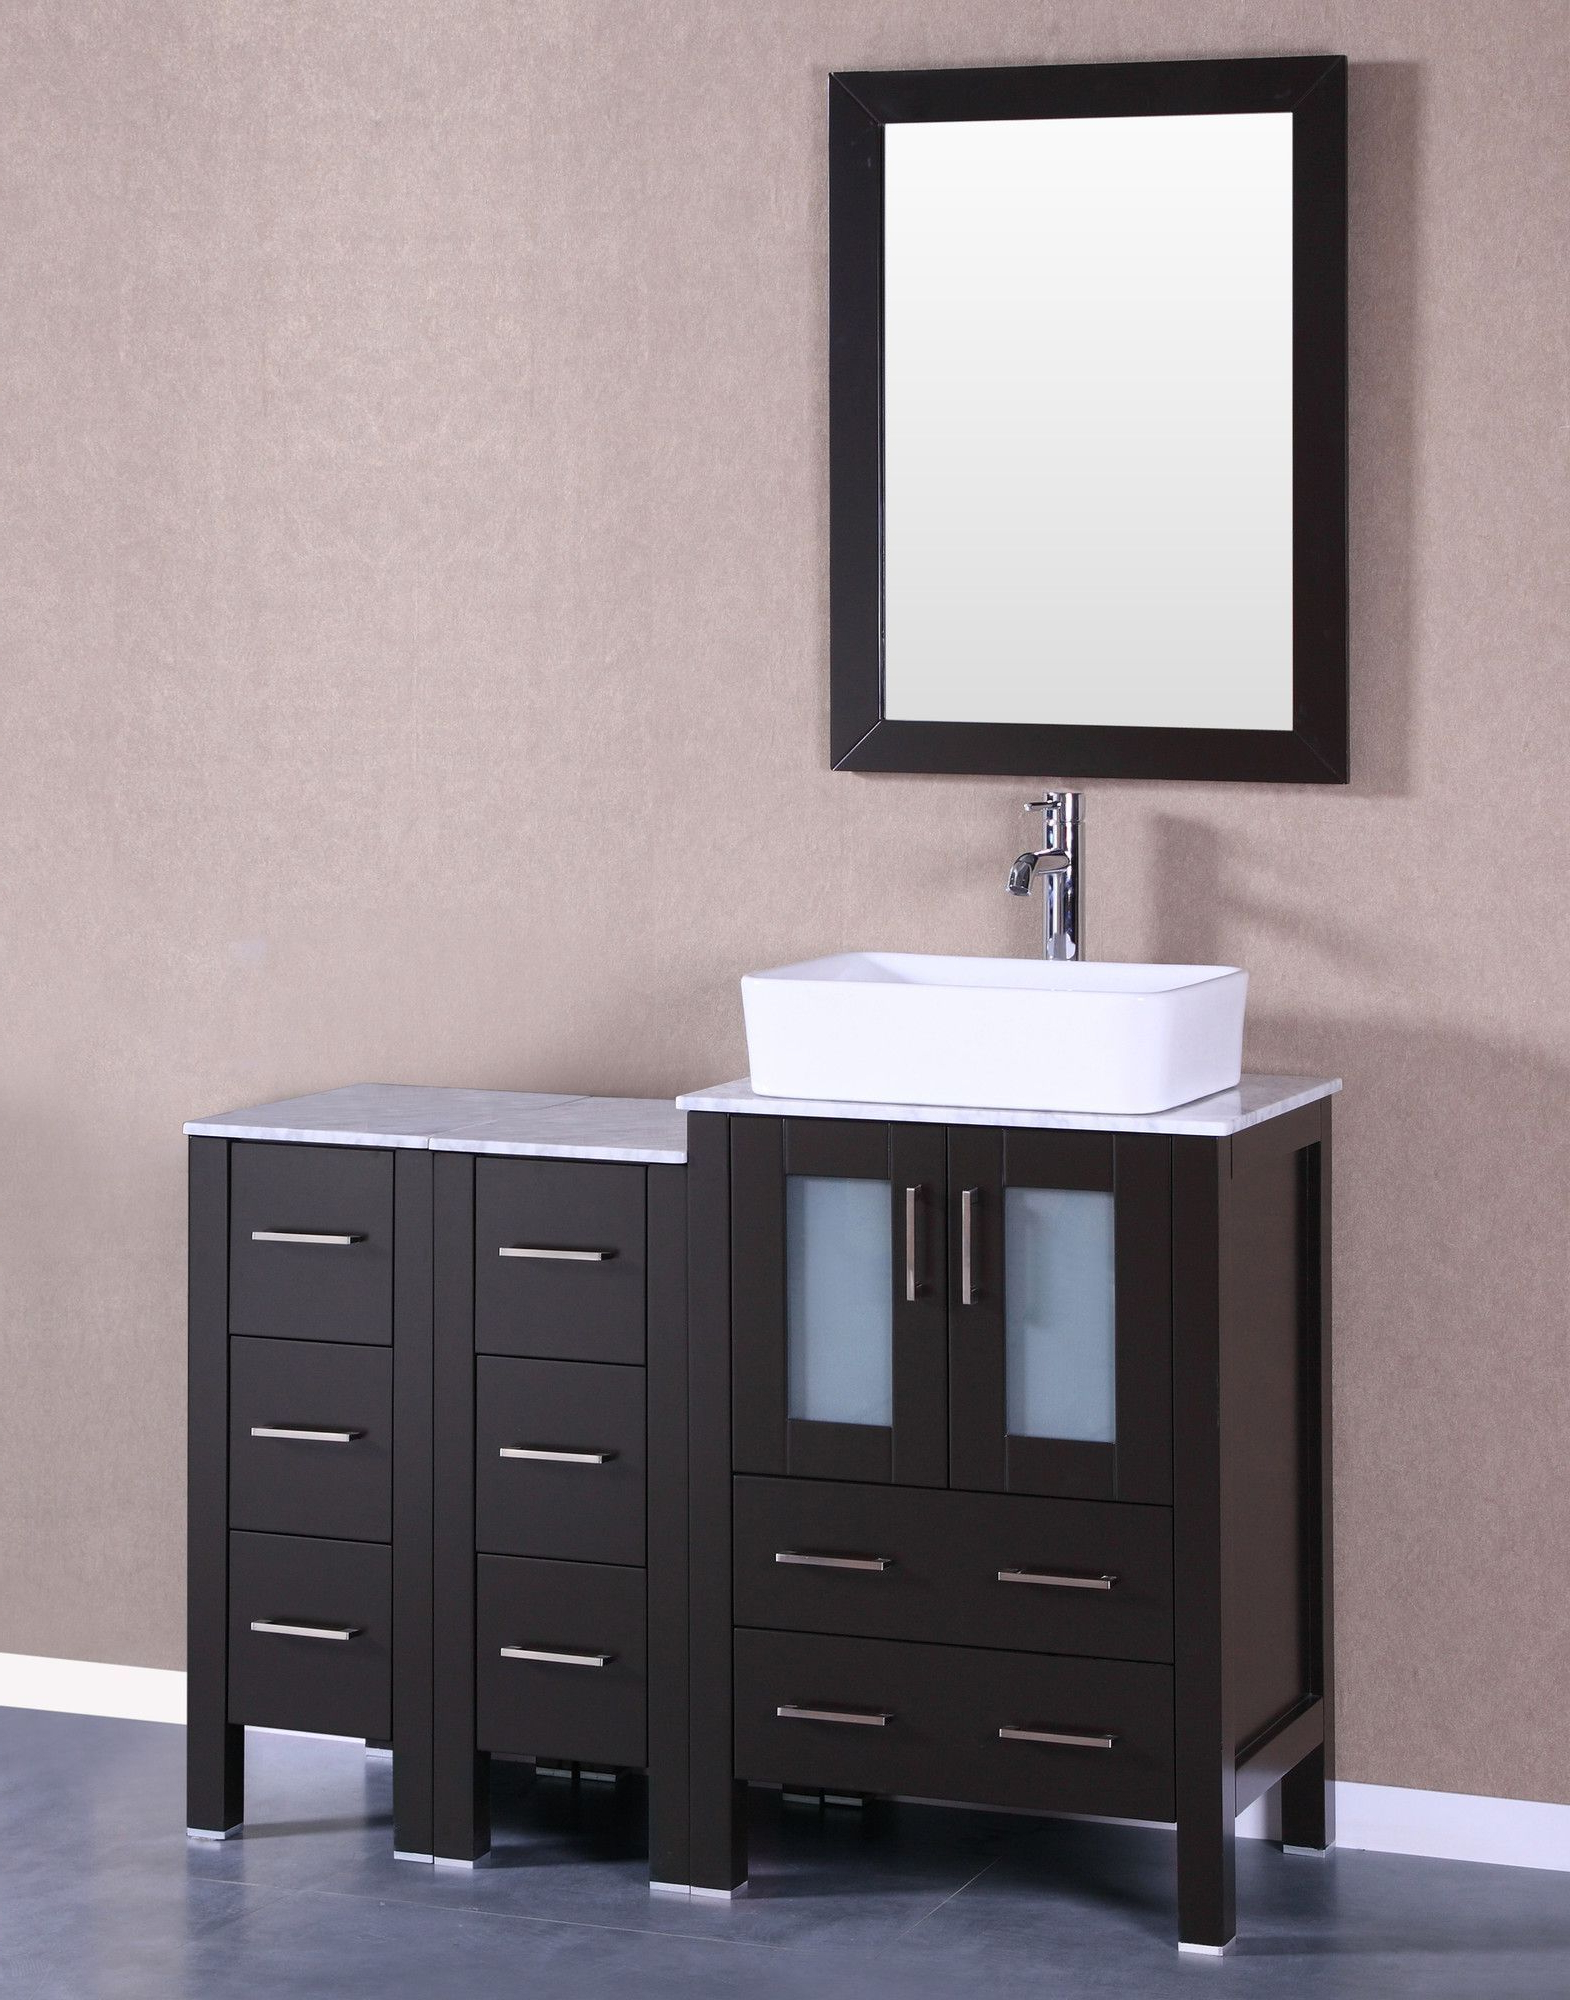 "Mexborough Bathroom/vanity Mirrors Pertaining To Most Popular 48"" Single Vanity Set With Mirror (View 11 of 20)"